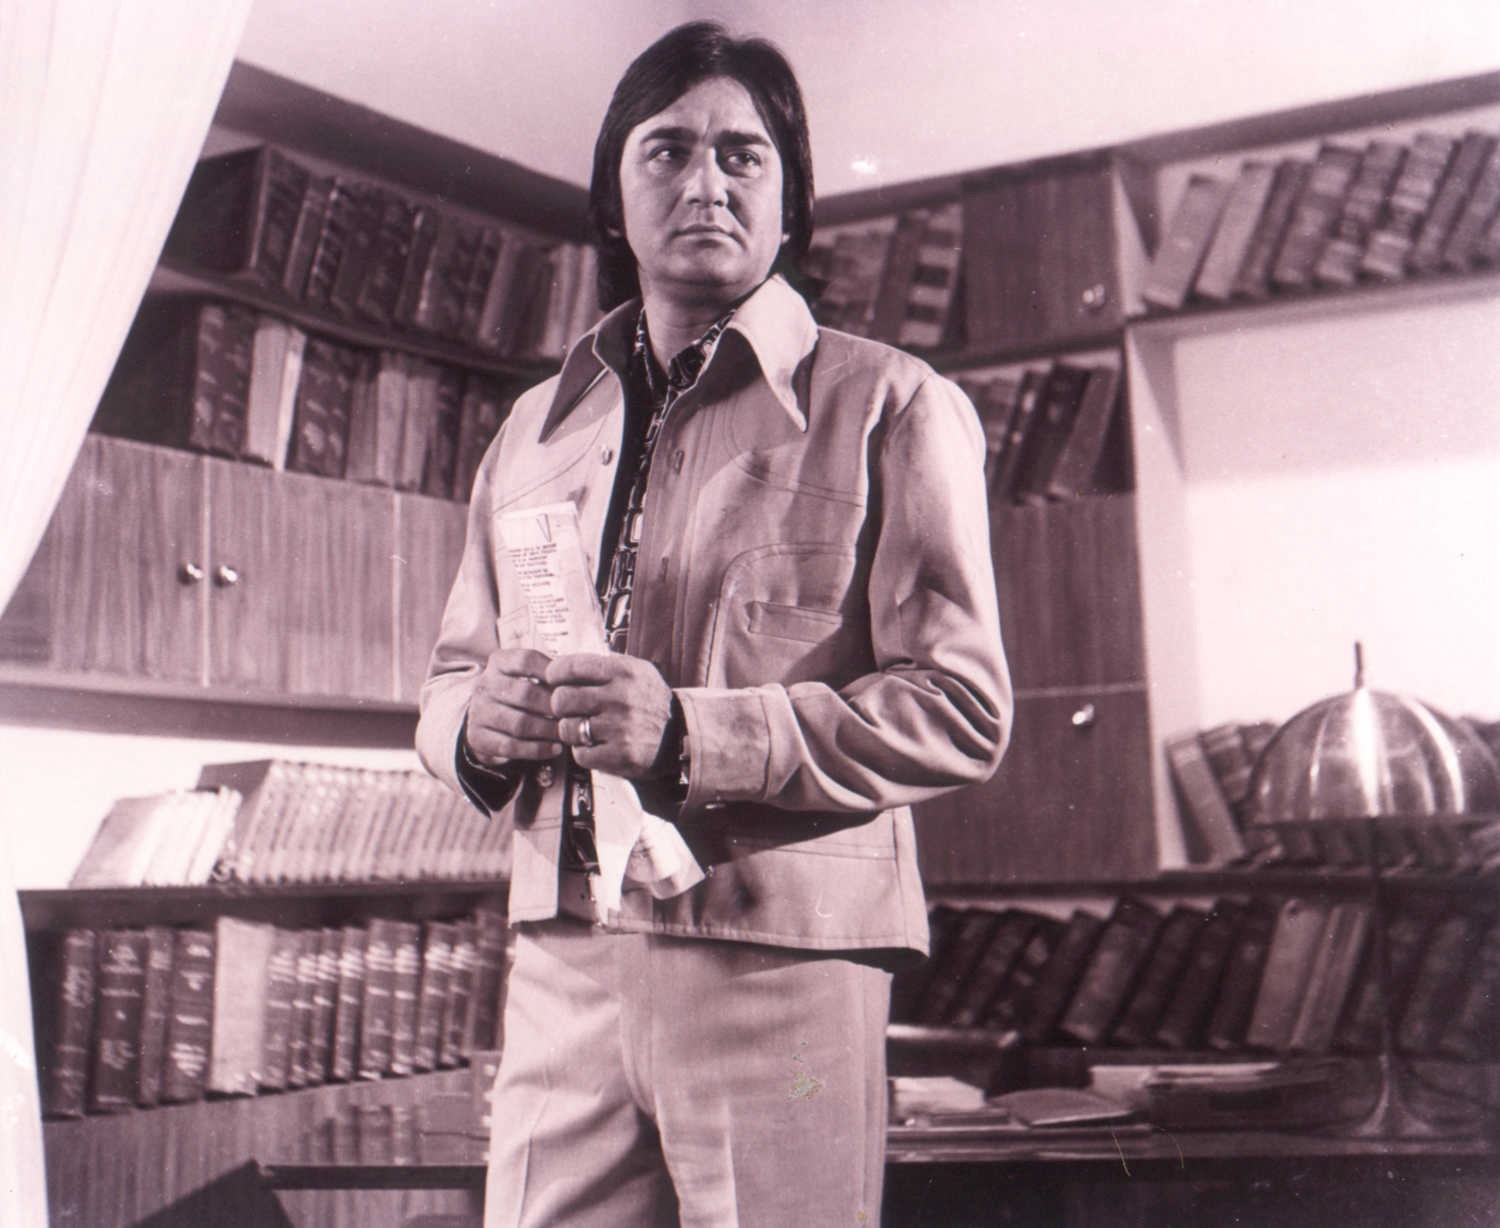 Remembering Sunil Dutt on his 13th death anniversary  Sunil Dutt  6 June 1930   25 May 2005   born Balraj Dutt  was a movie actor   producer  director and politician  He was the Minister of Youth Affairs and